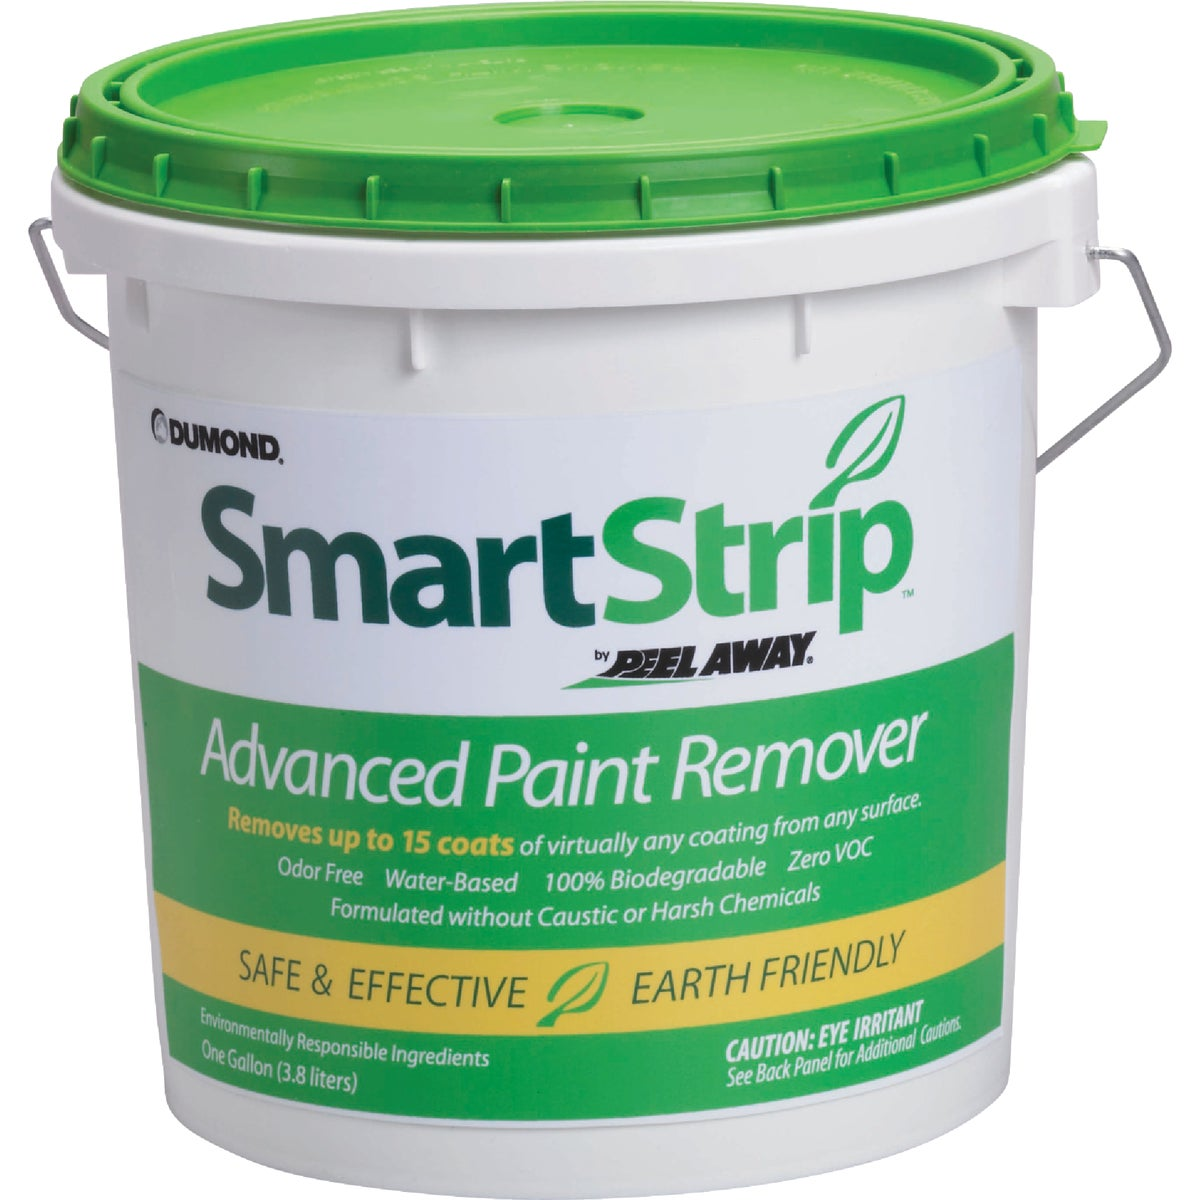 SMARTSTRP PAINT STRIPPER - 3301 by Dumond Chemicals